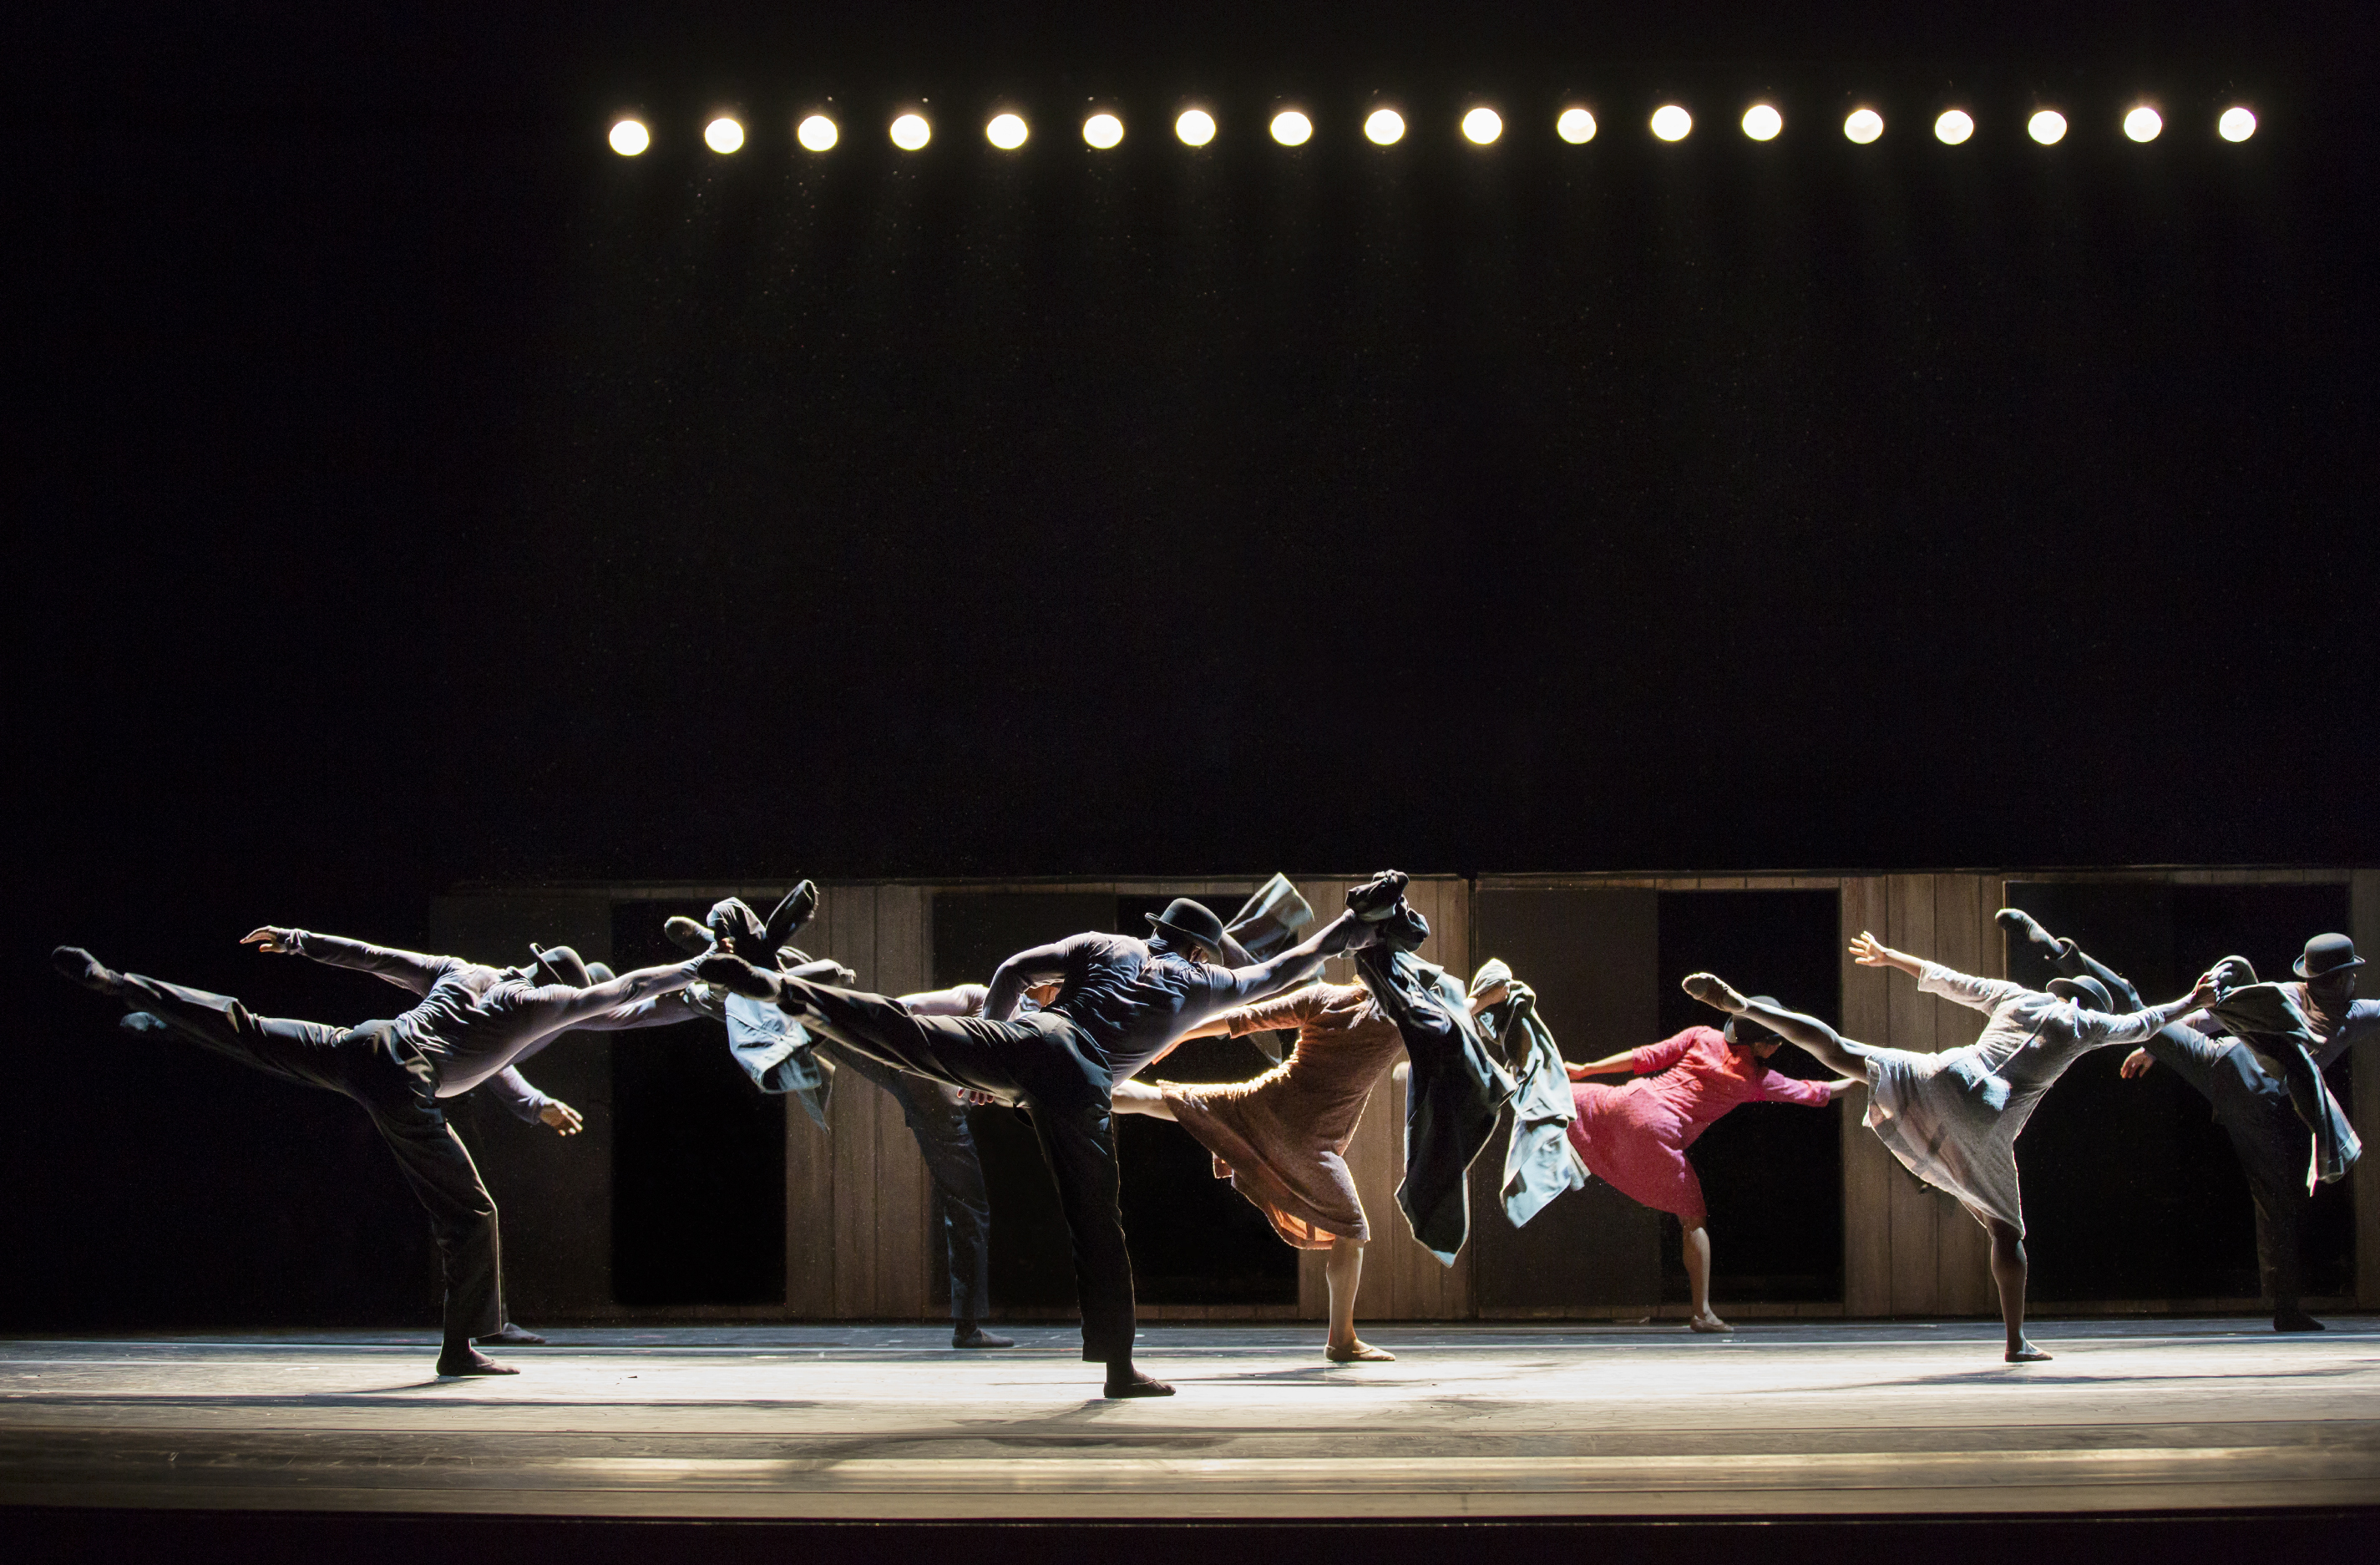 BWW Review: ALVIN AILEY AMERICAN DANCE THEATER at The John F. Kennedy Center For The Performing Arts